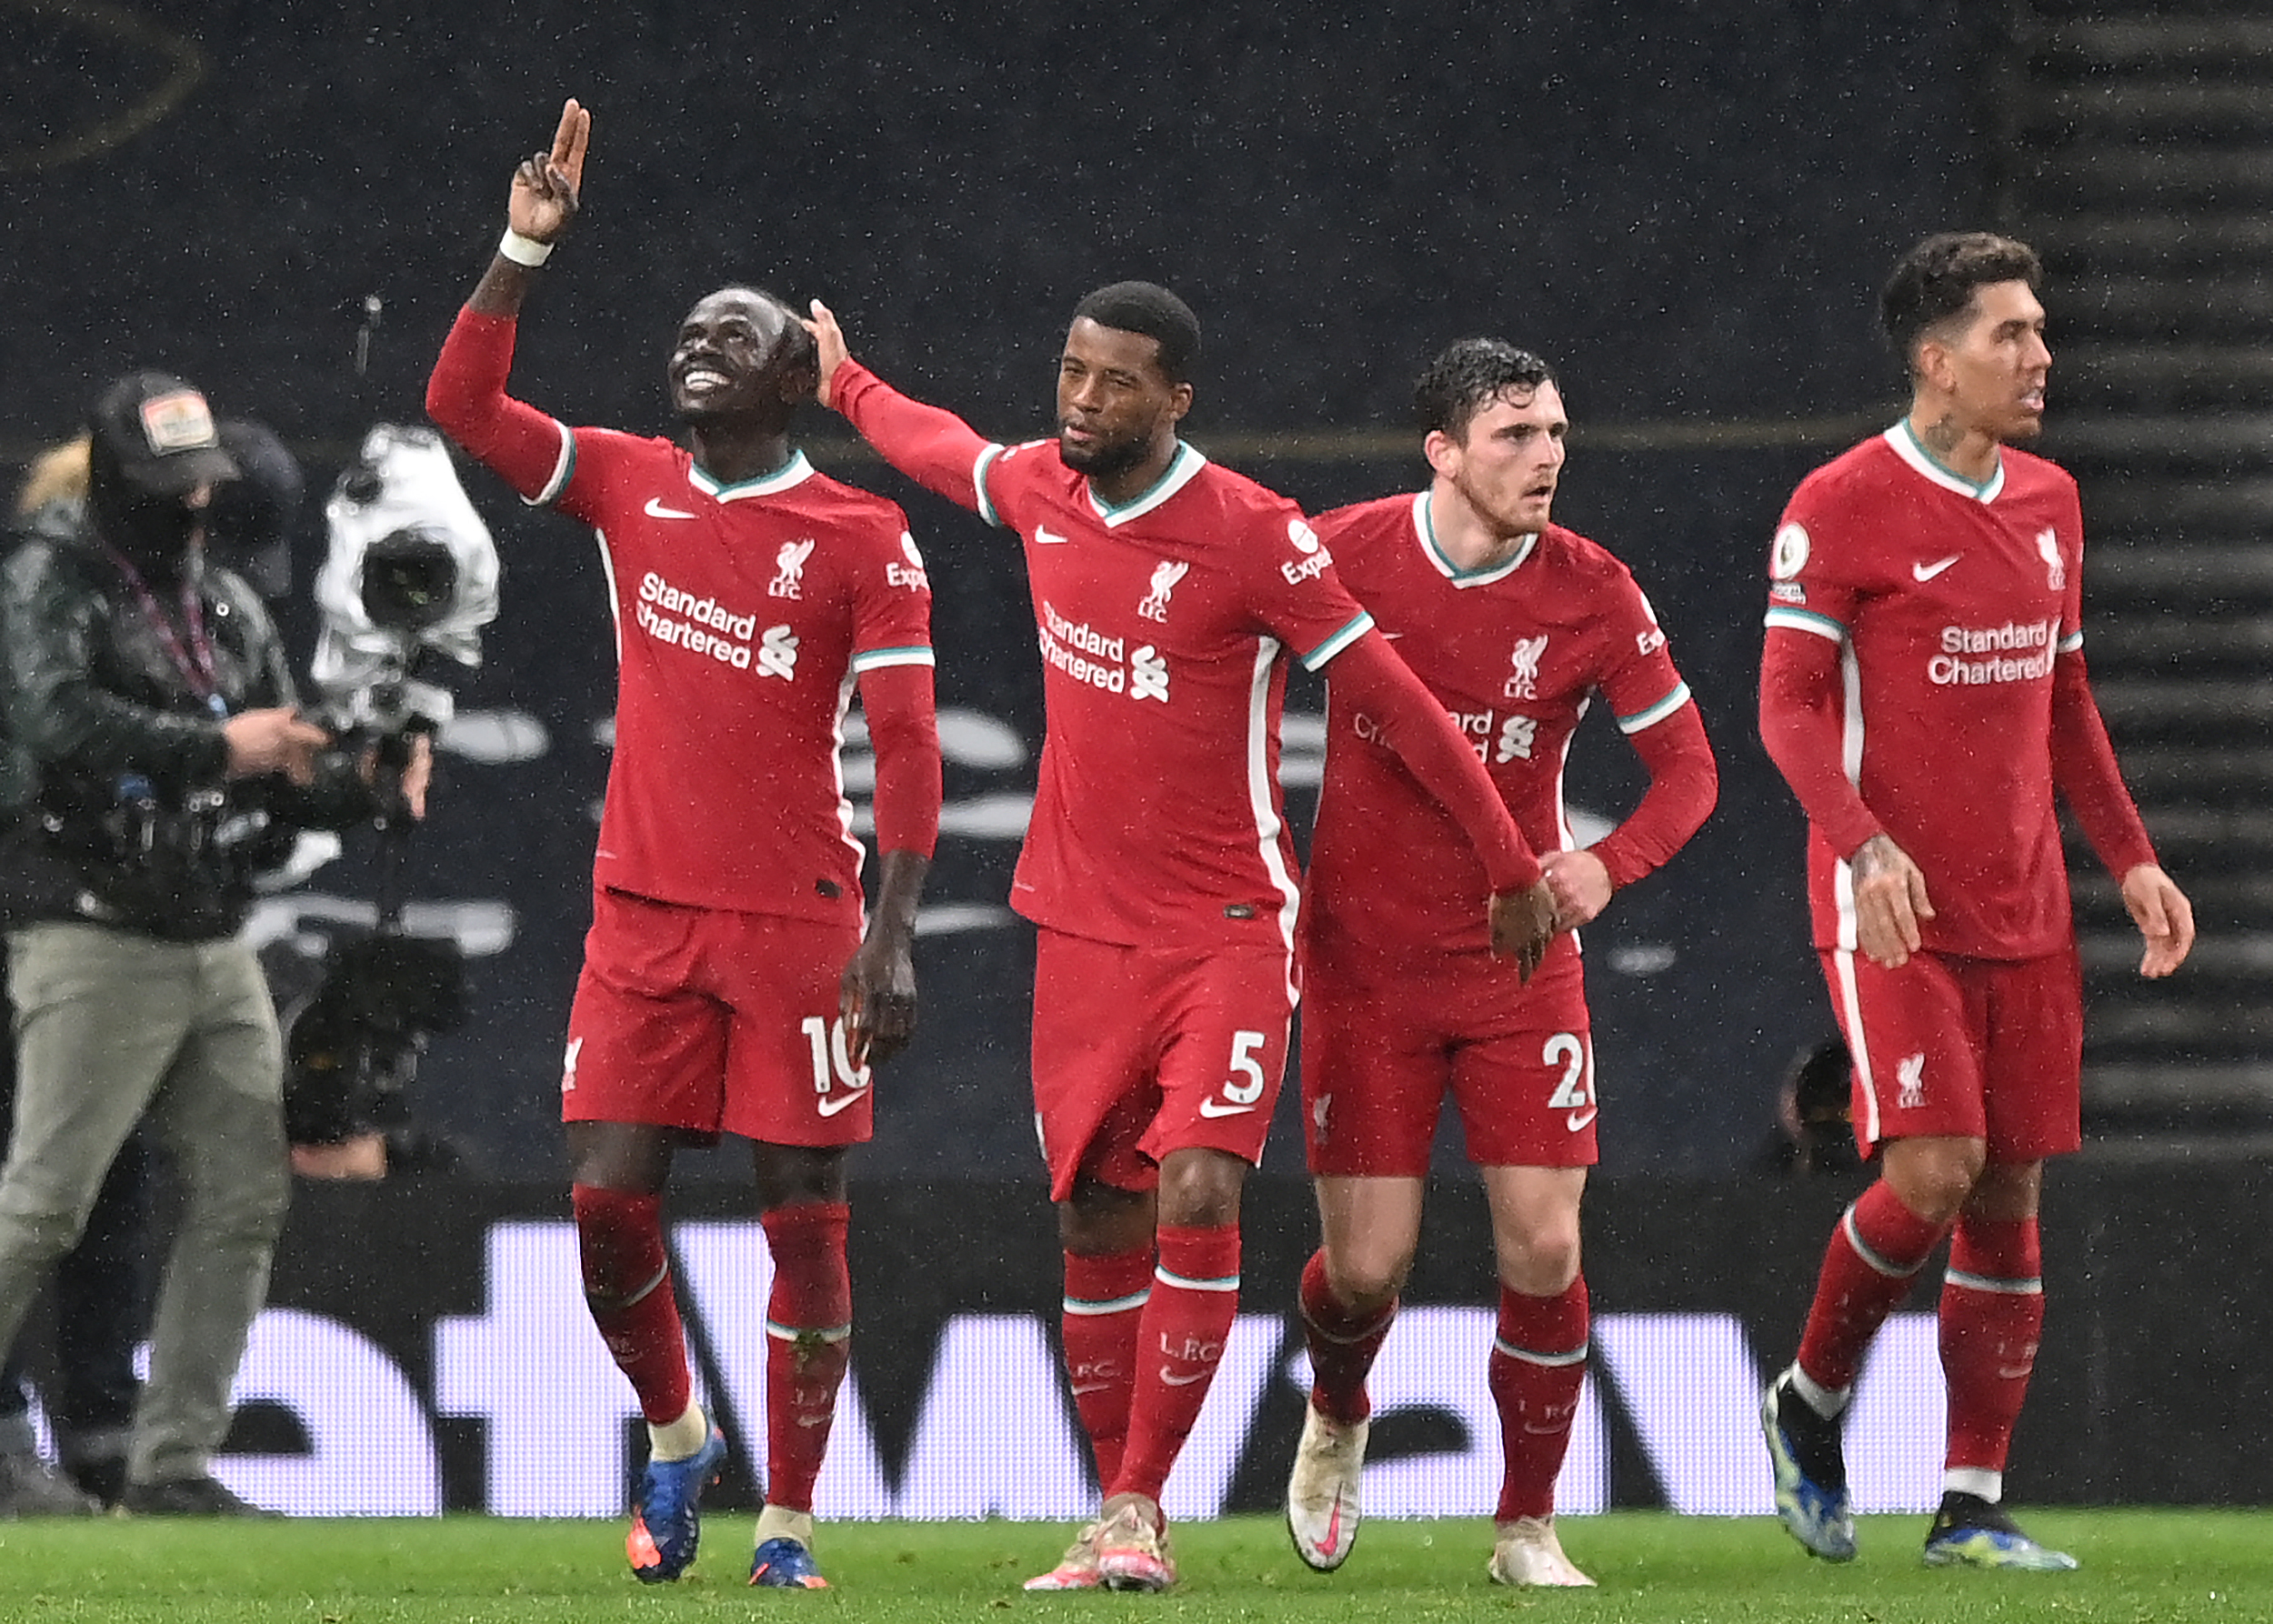 (Liverpool players are celebrating in the picture)